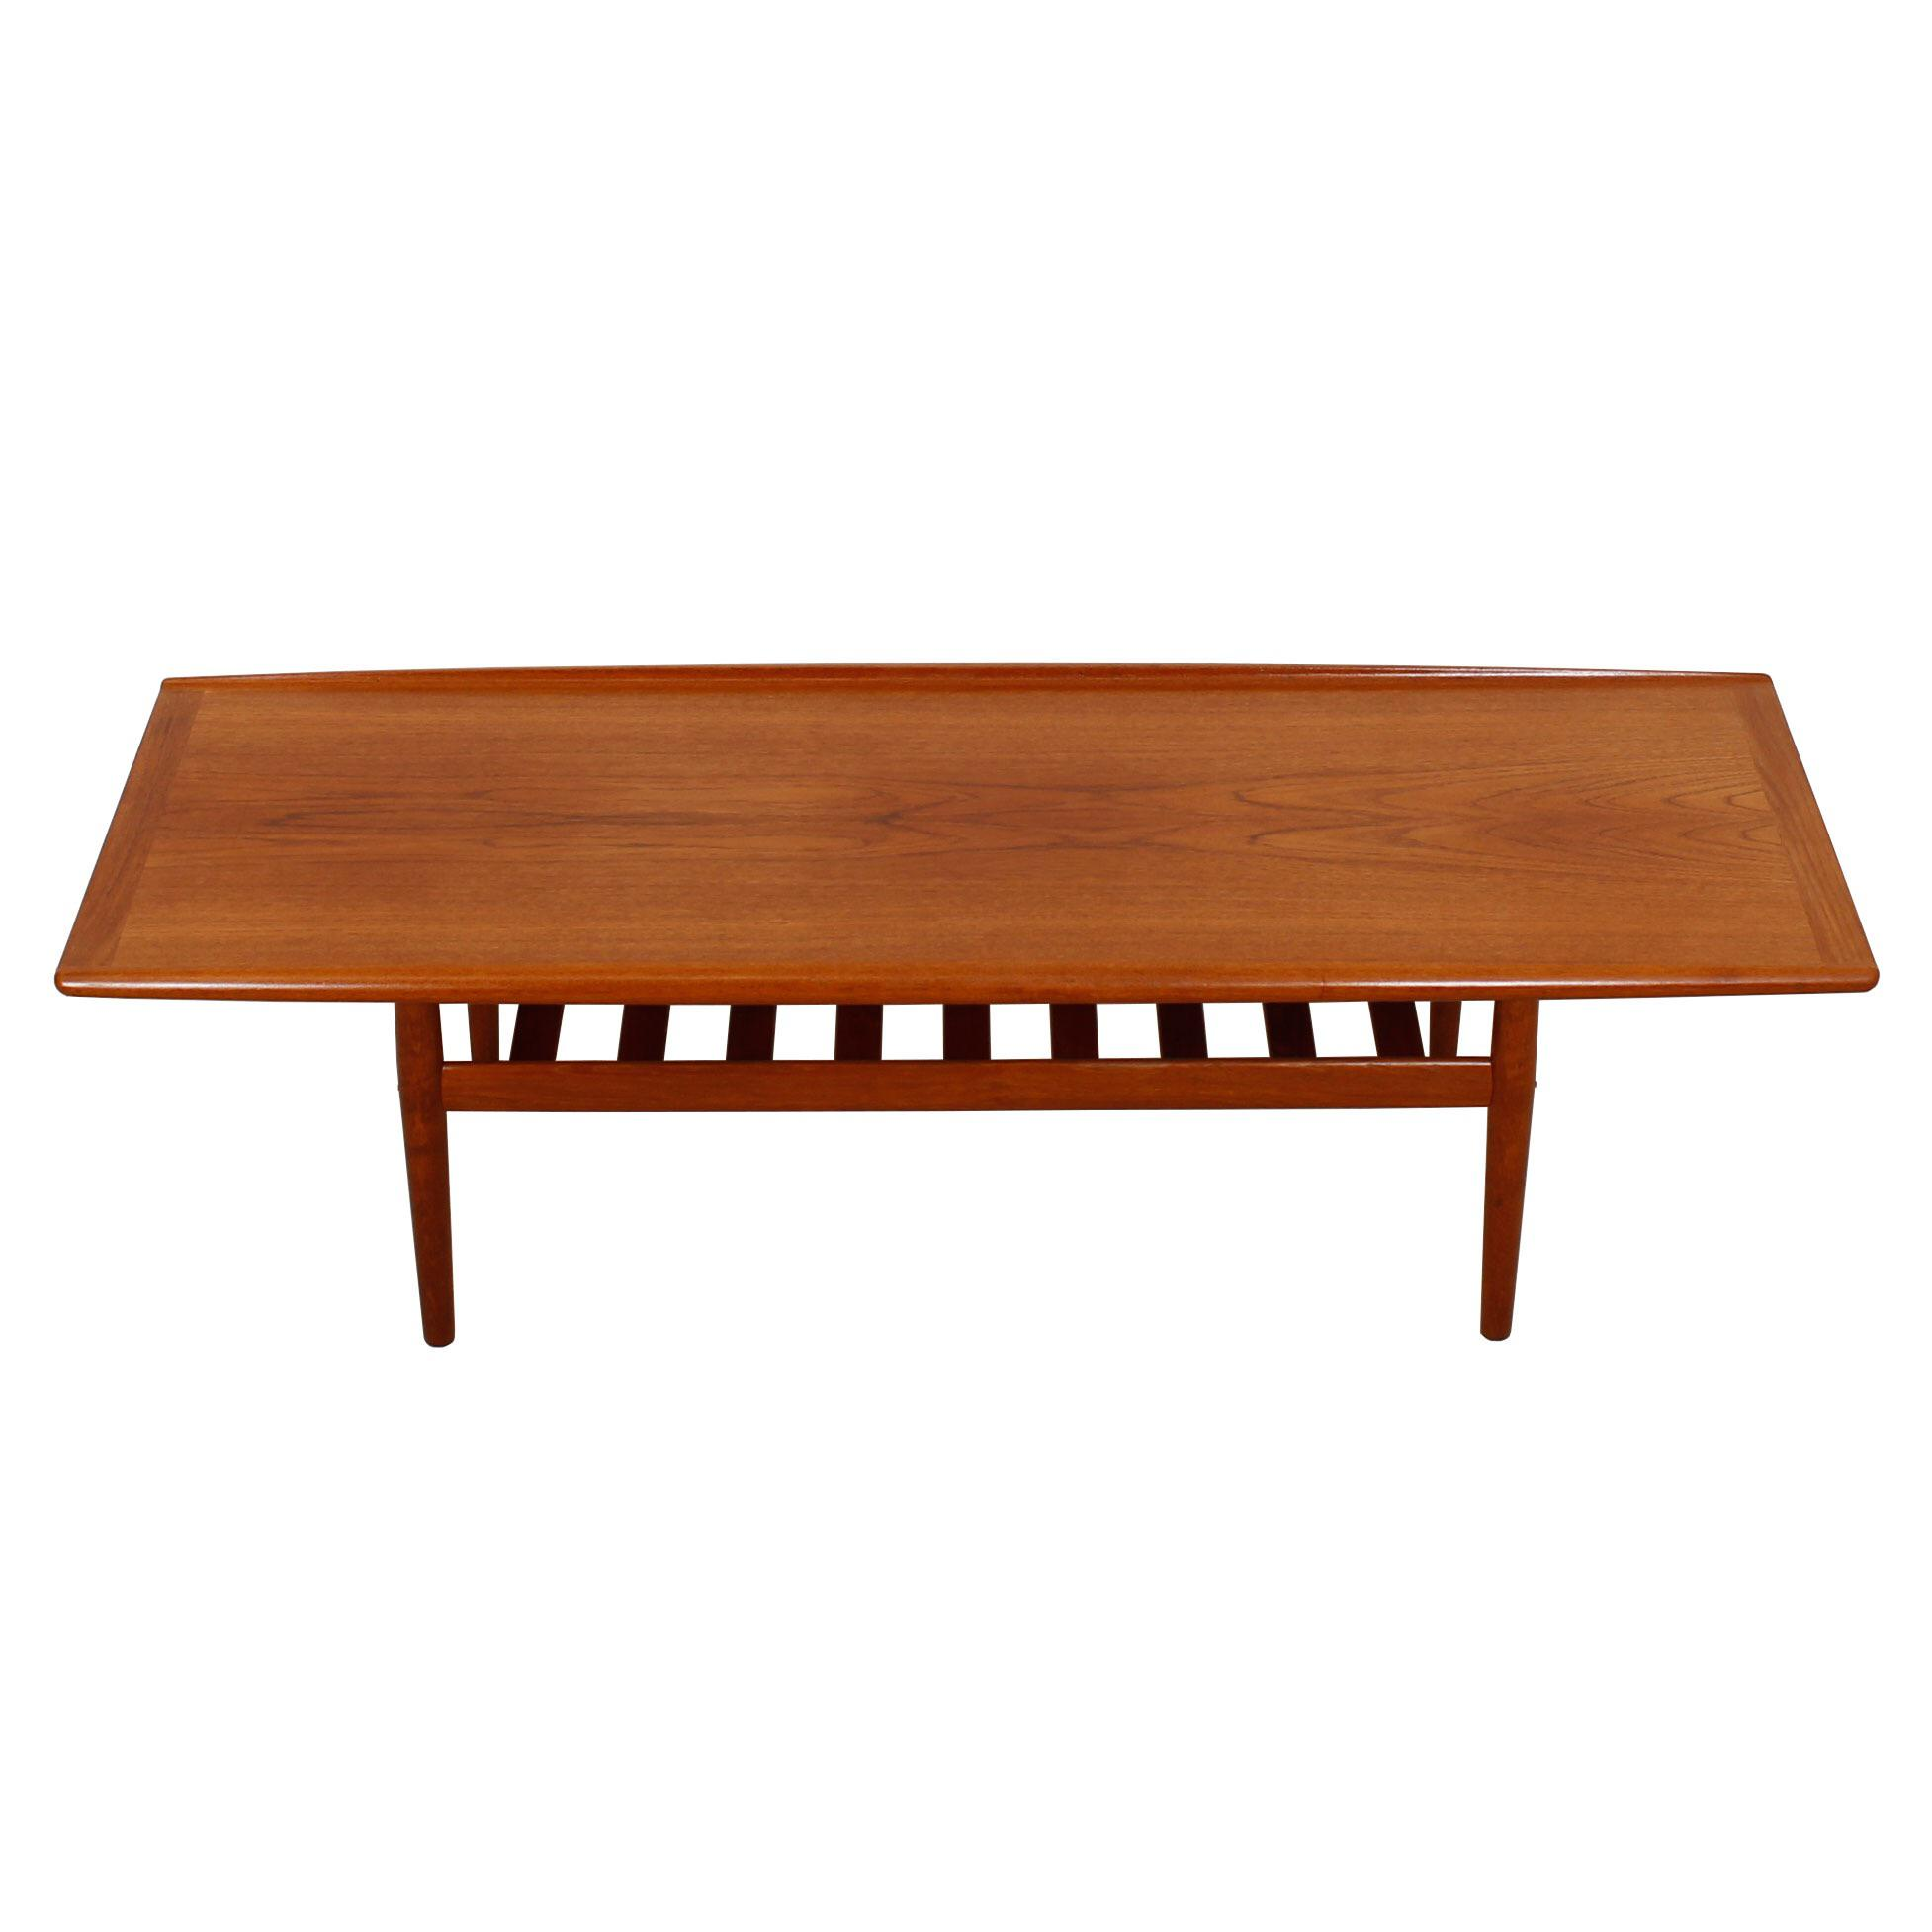 Grete Jalk Danish Teak Surfboard Coffee Table